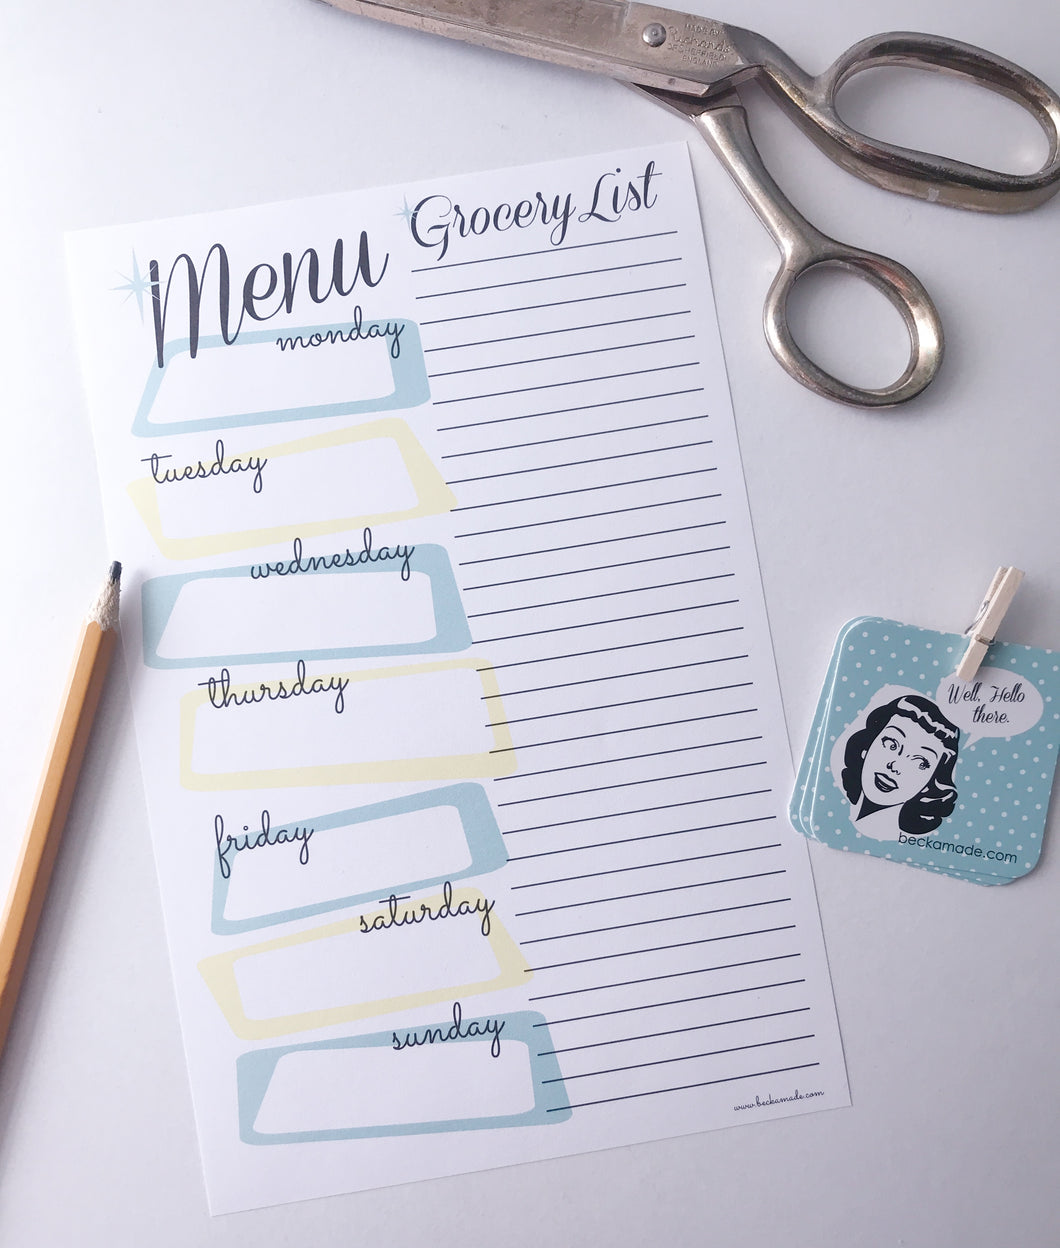 Digital File - Menu Grocery List Digital Download Printable.